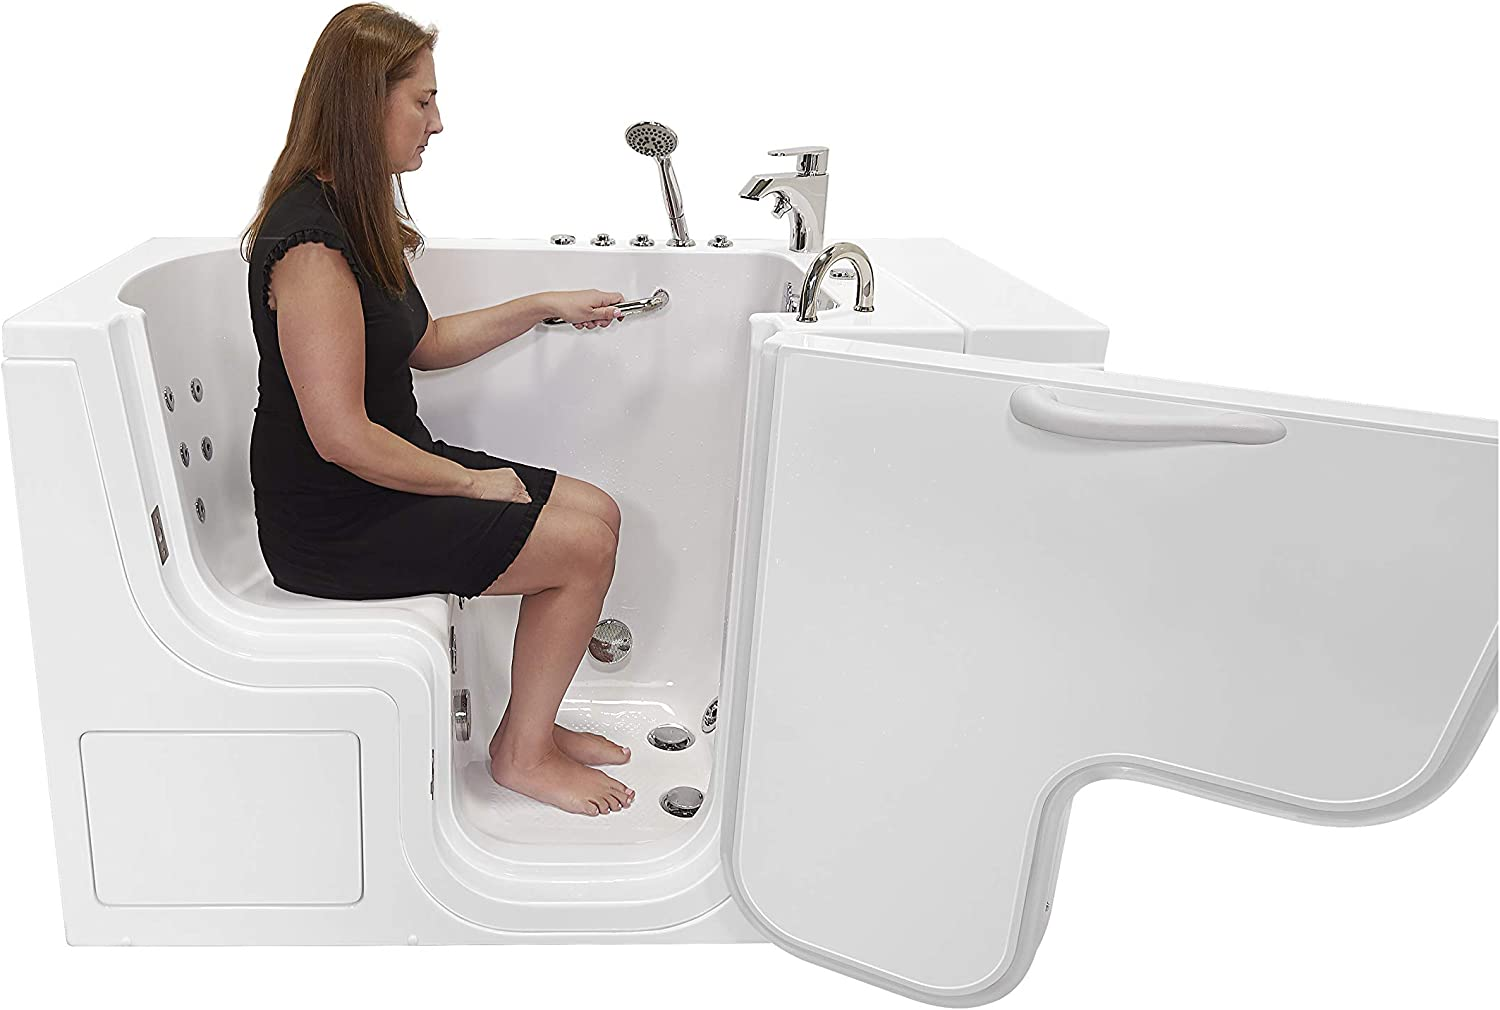 30x52 Transfer Surprise price Hydro Foot Massage Fast Acrylic Walk-In Fill Quantity limited Tub